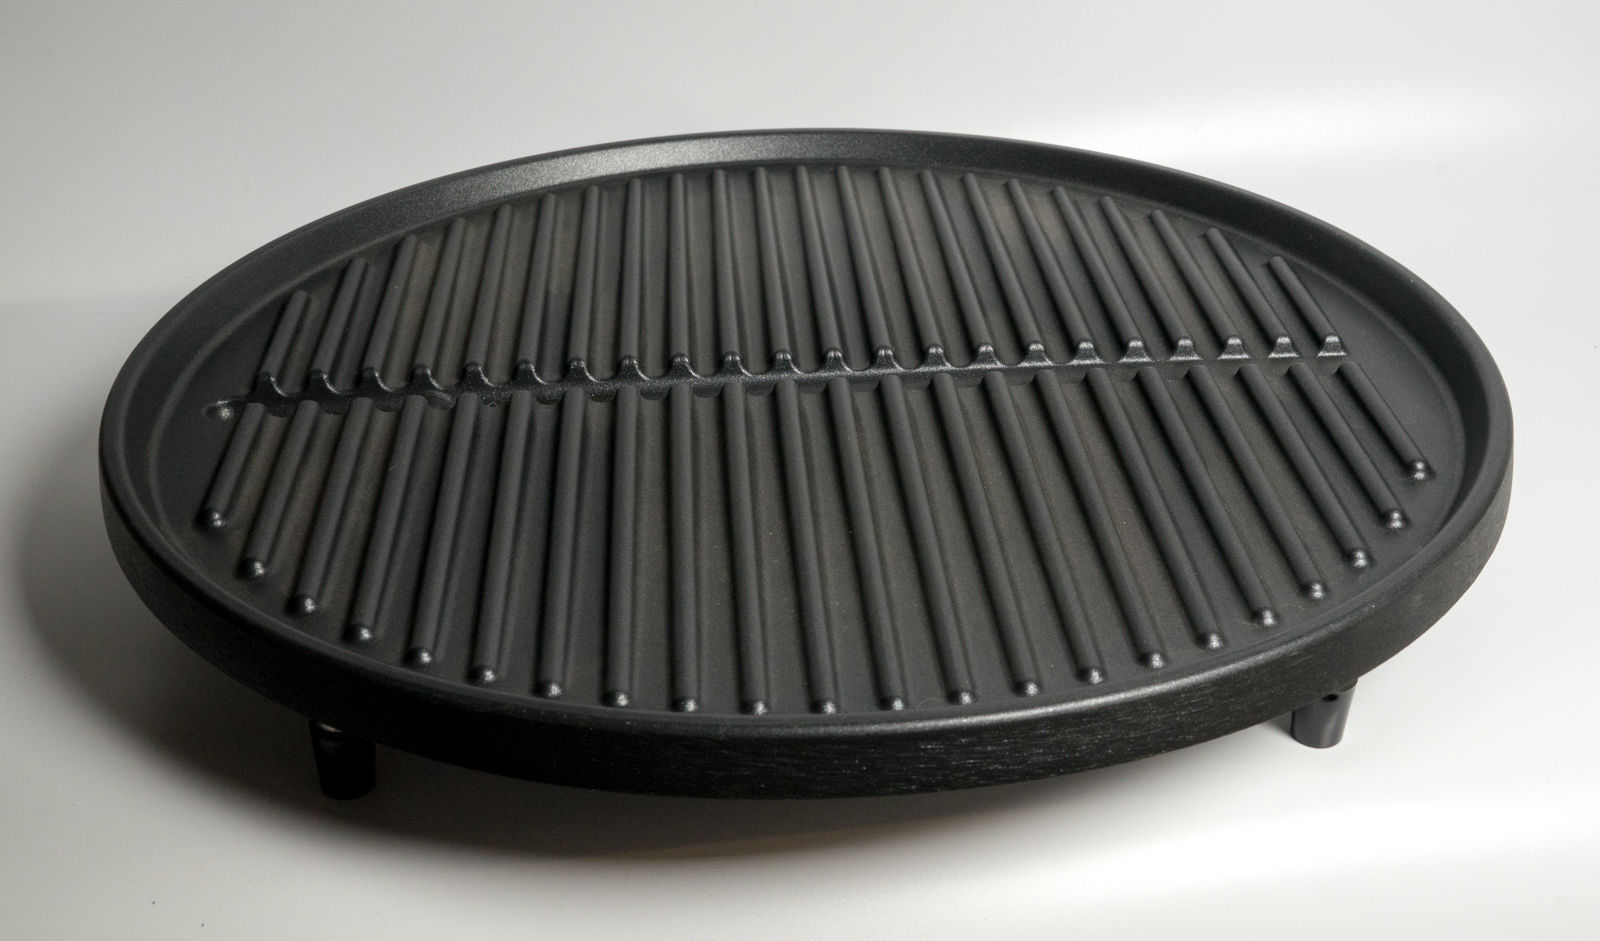 Outdoor Küche Broil King George Foreman Grill Ggr60 Replacement And 50 Similar Items